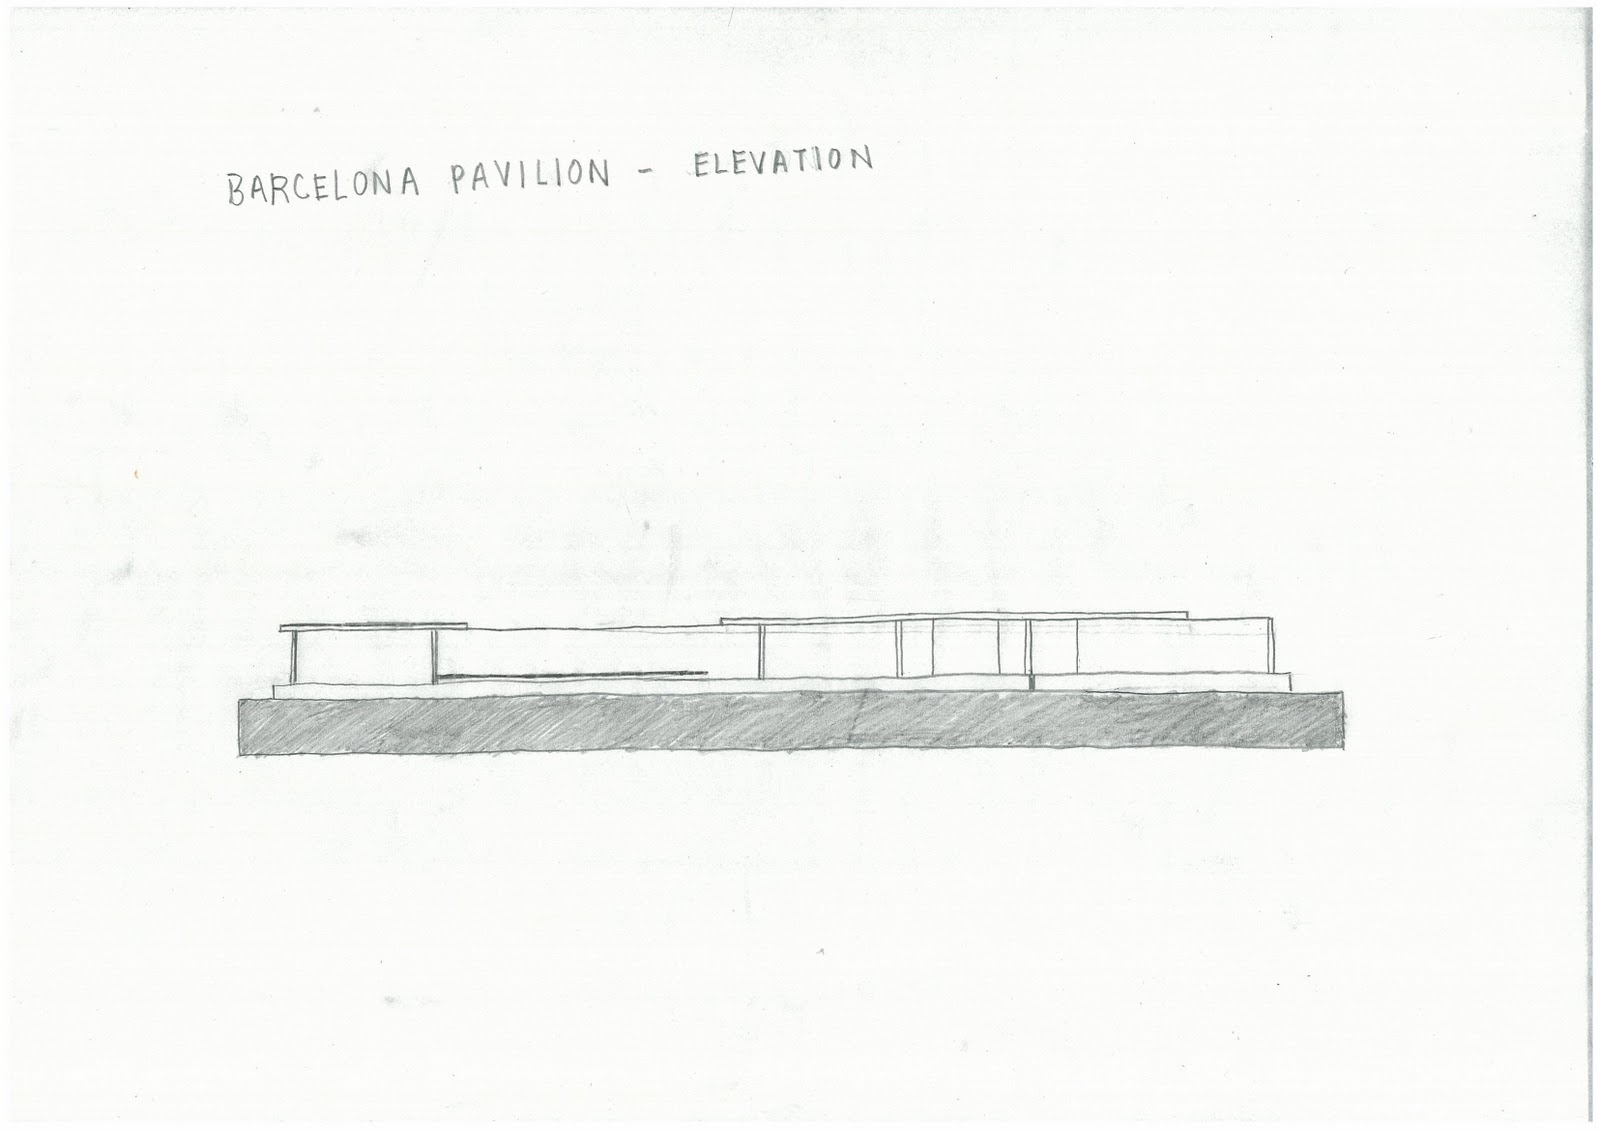 Barcelona pavilion section drawing - Gt Sketch Journal 04a Gt Ludwig Mies Van Der Rohe Barcelona Pavilionbarcelona Pavilion Section Drawings